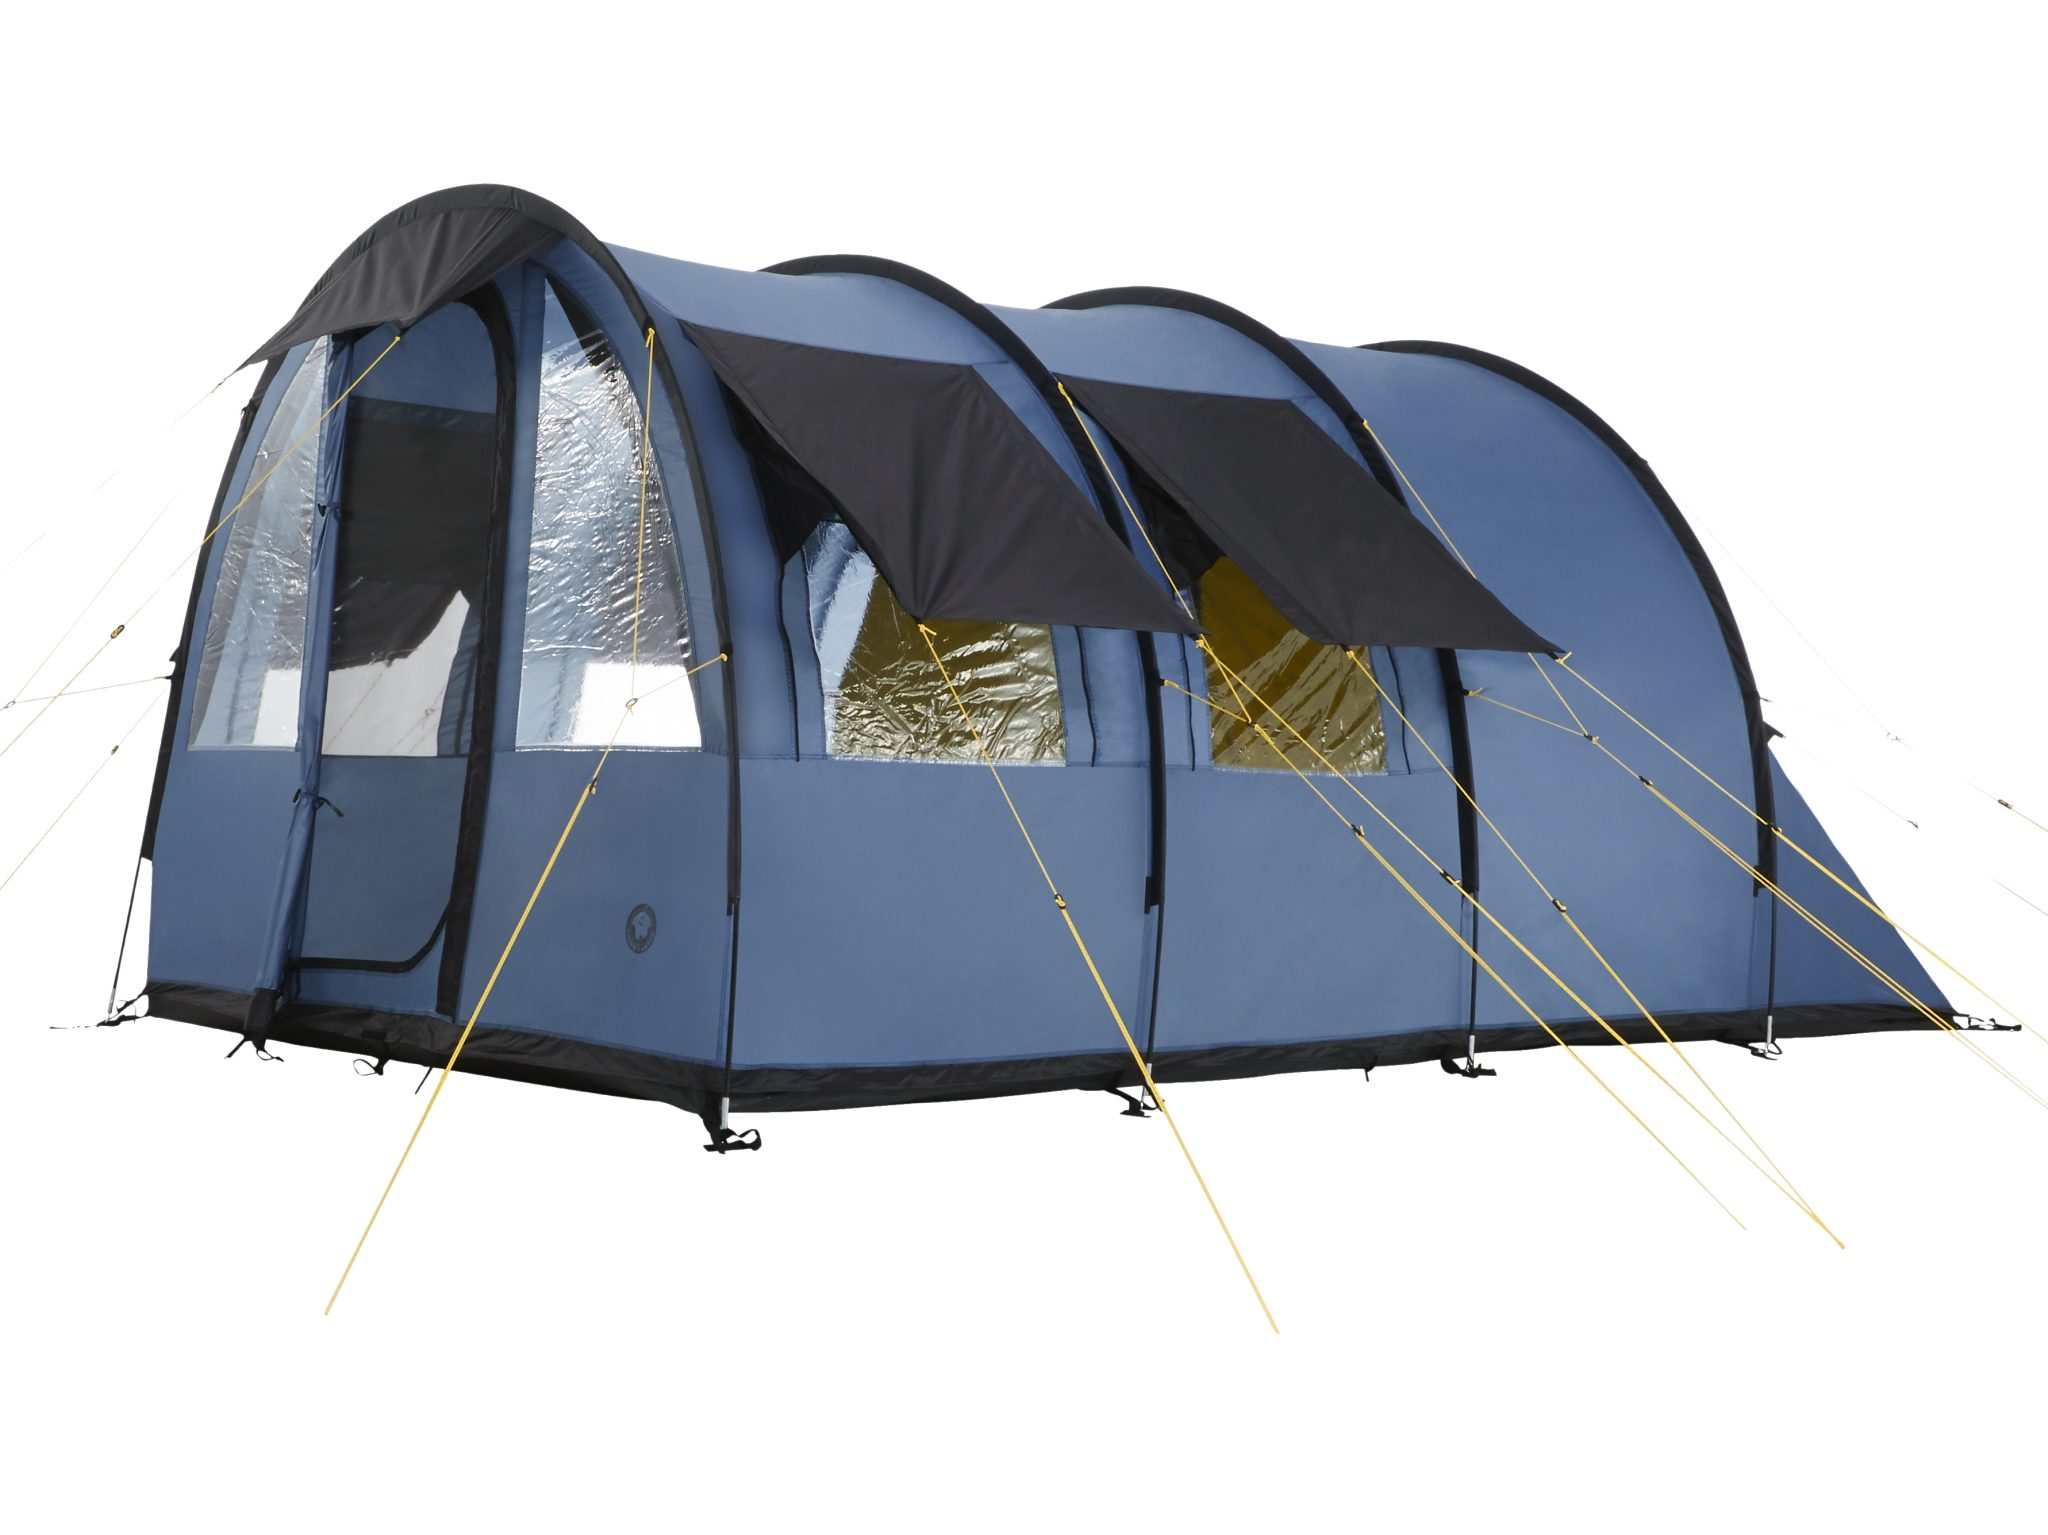 Grand Canyon Zelt »Helena 3 Tent«